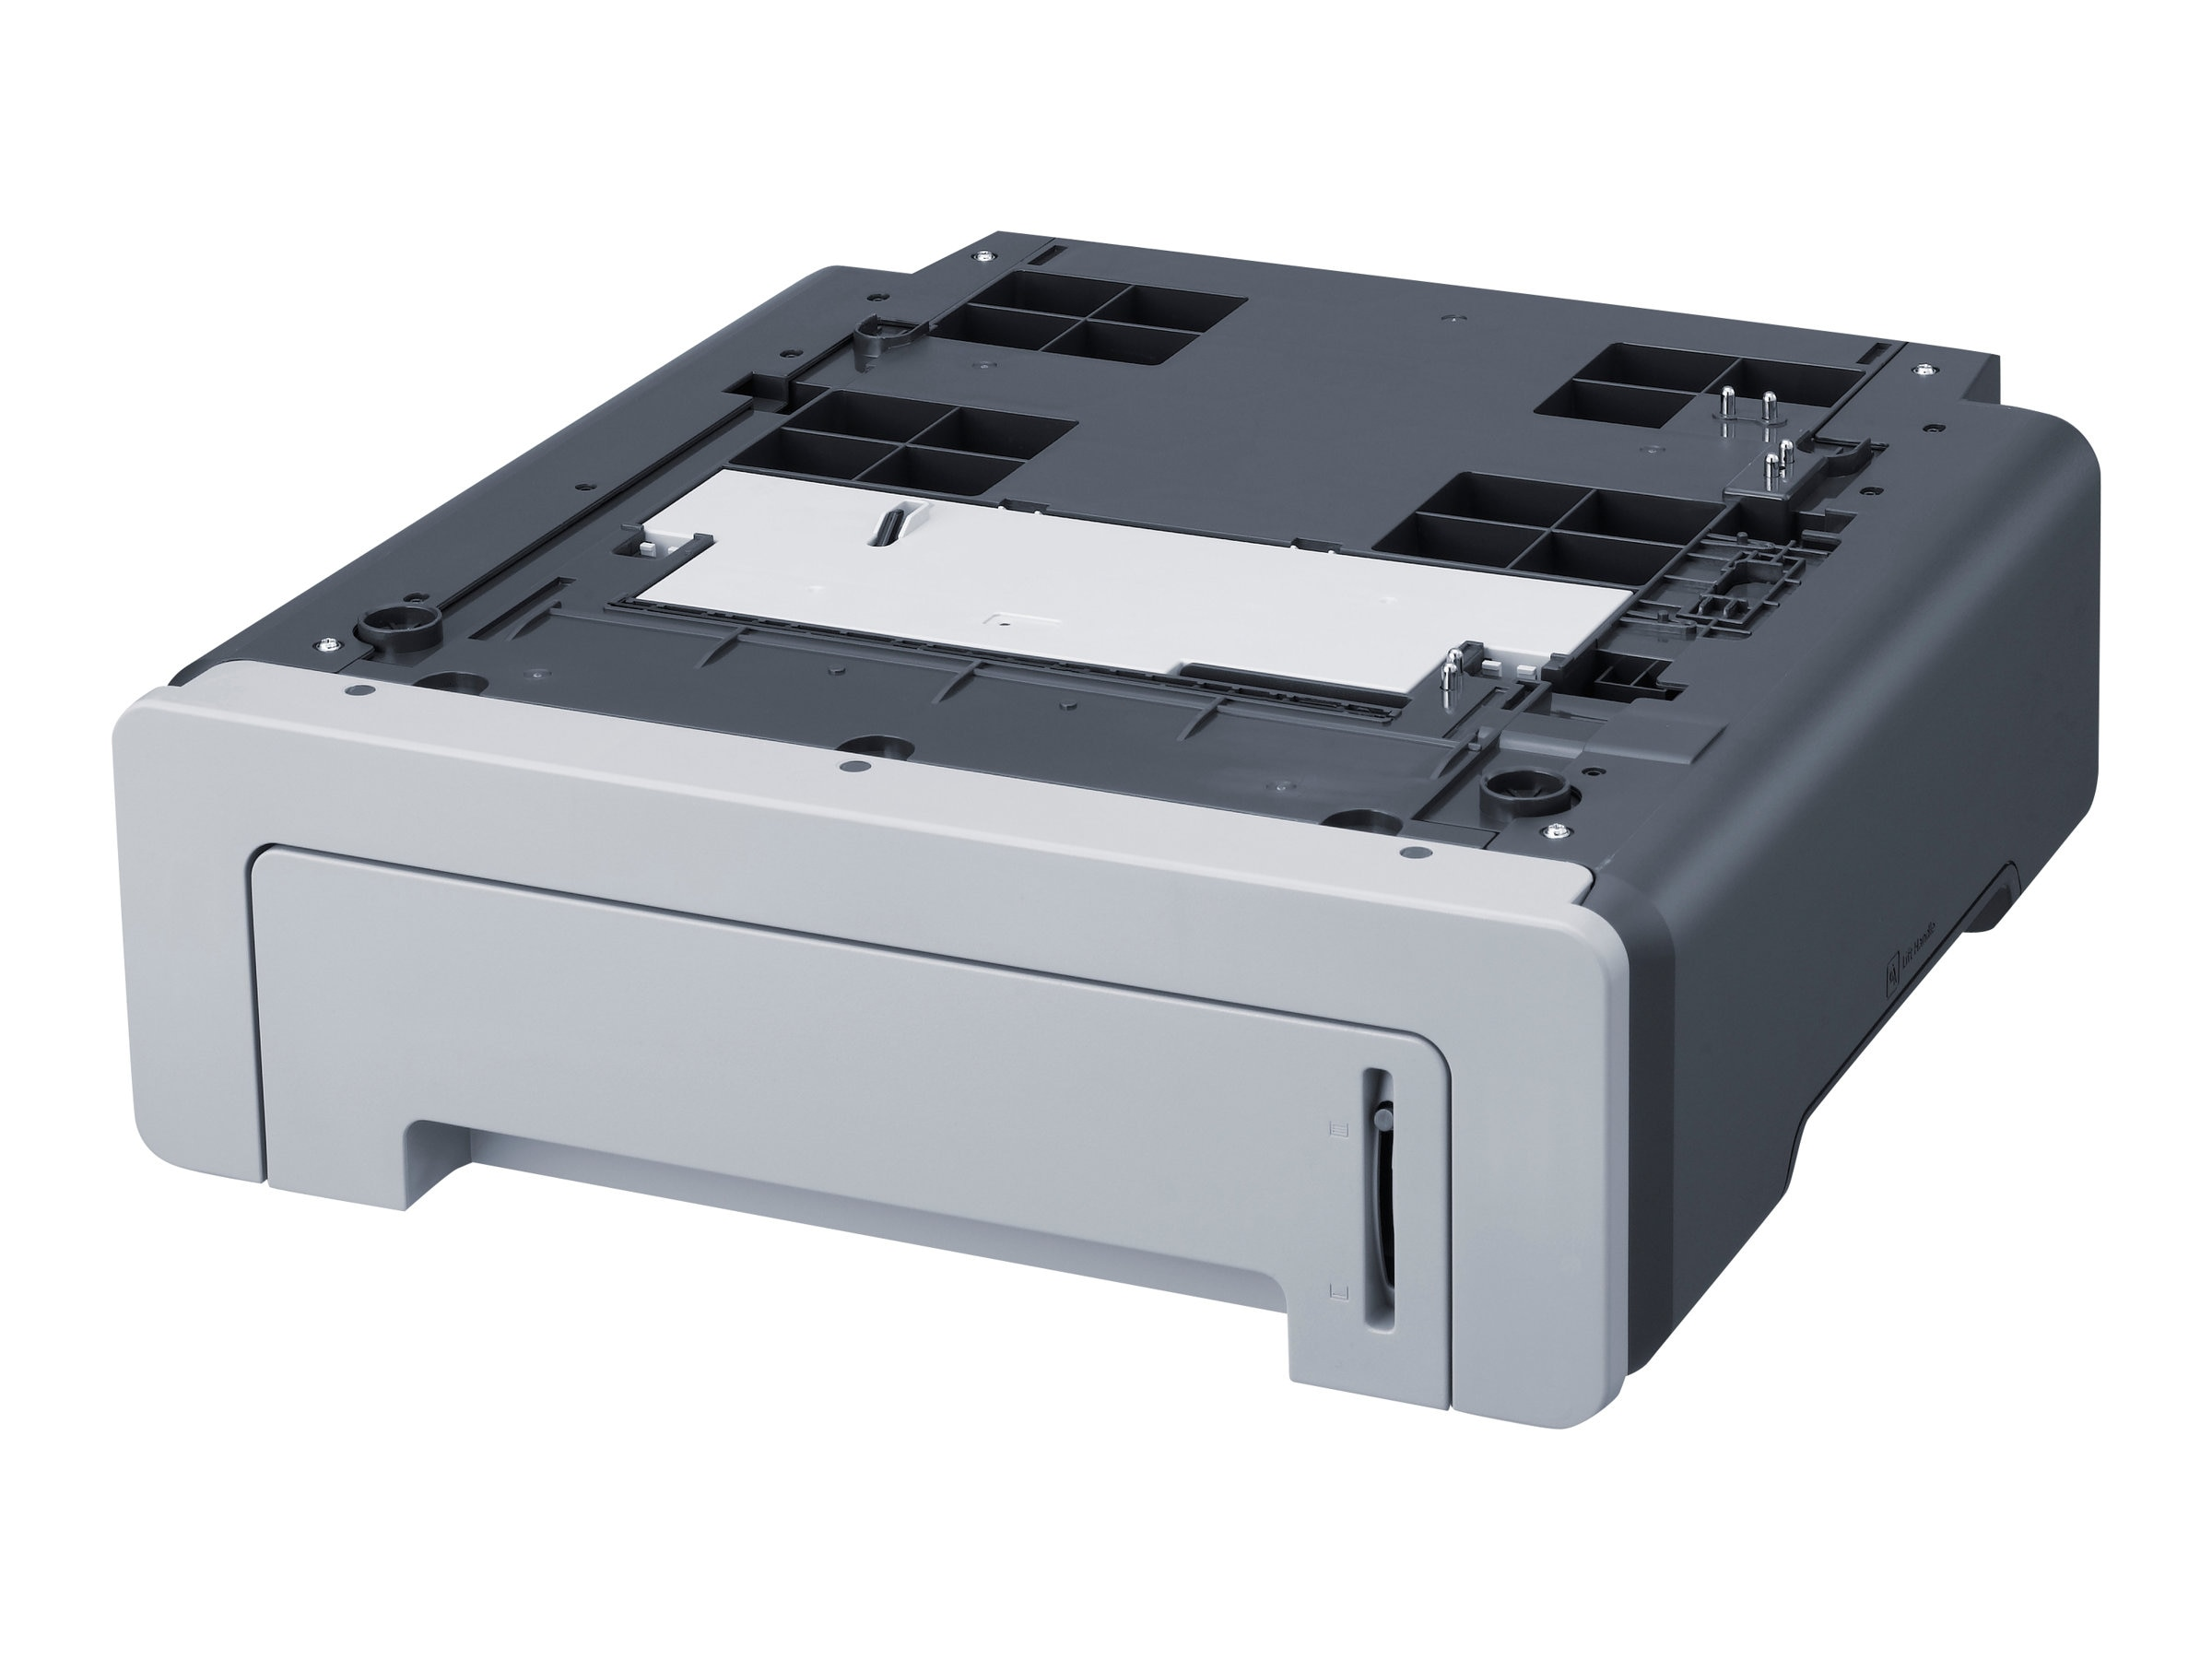 Samsung 500-Sheet Second Cassette Feeder for CLP-620ND & CLP-670ND Color Laser Printers, CLP-S670A, 11004453, Printers - Input Trays/Feeders